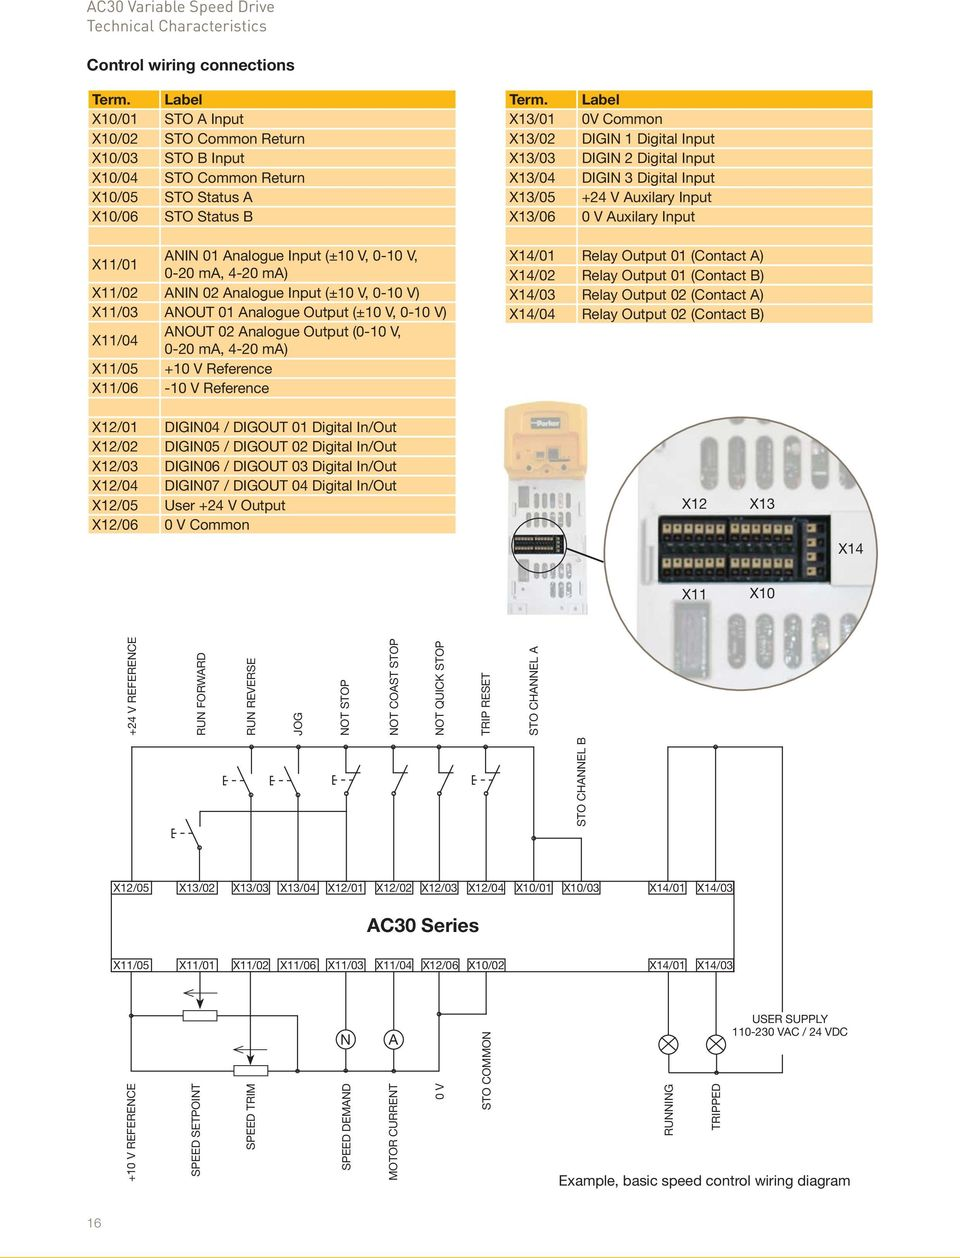 X11/02 ANIN 02 Analogue Input (±10 V, 0-10 V